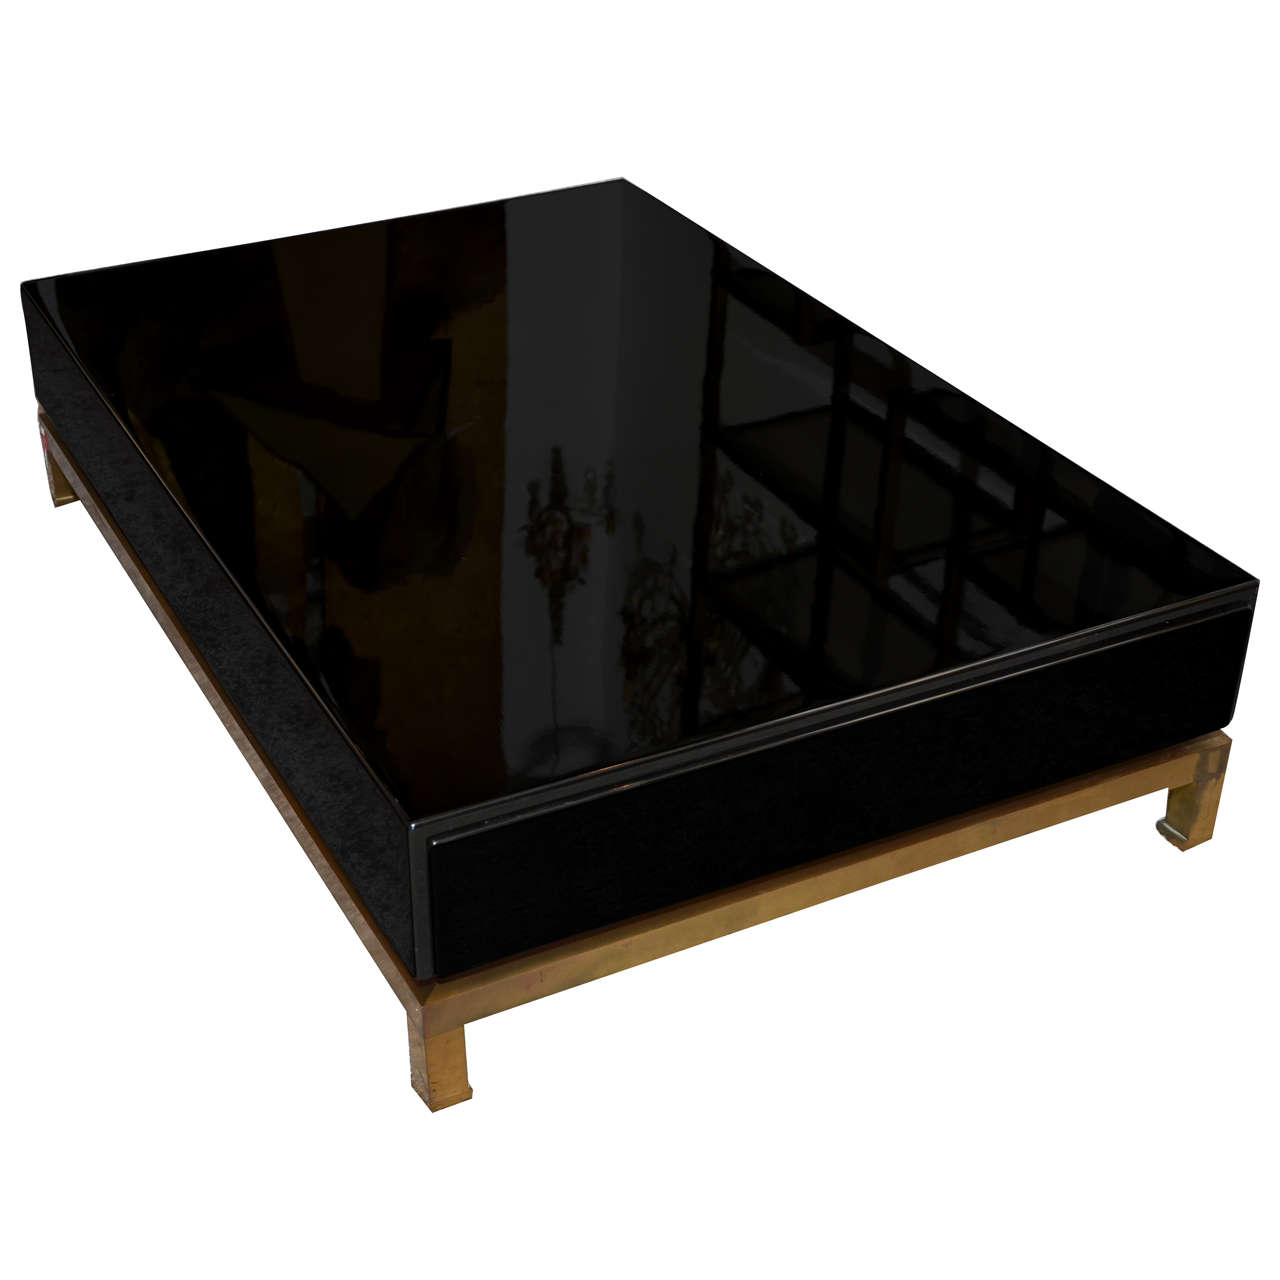 1970s Coffee Table By Guy Lef Vre For Maison Jansen At 1stdibs